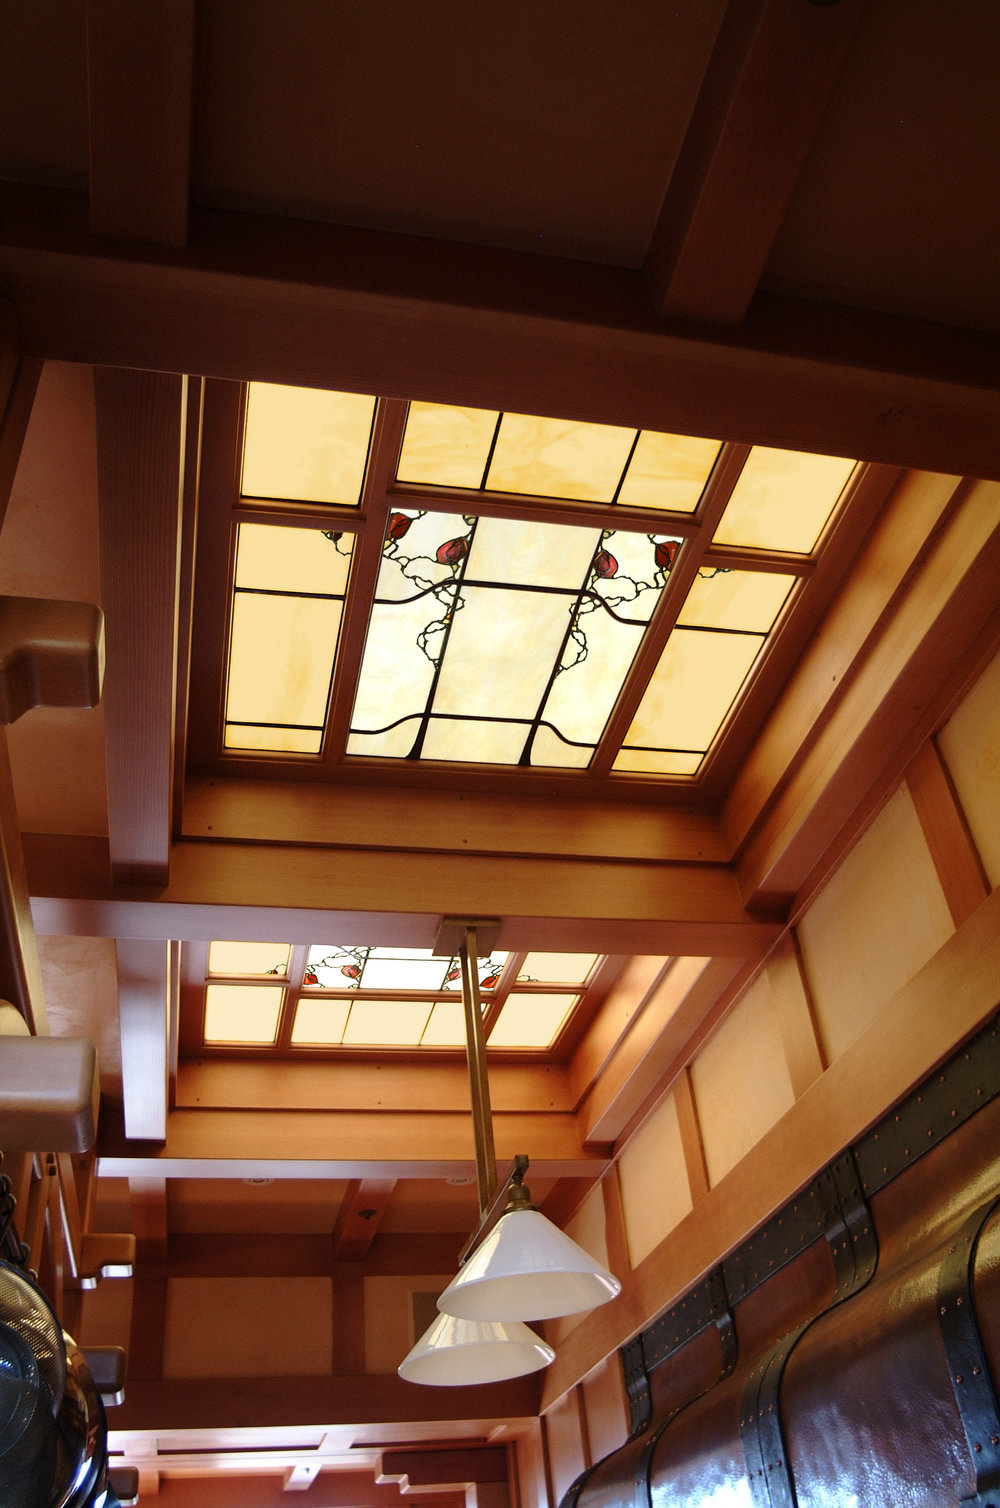 rose skylight.jpg